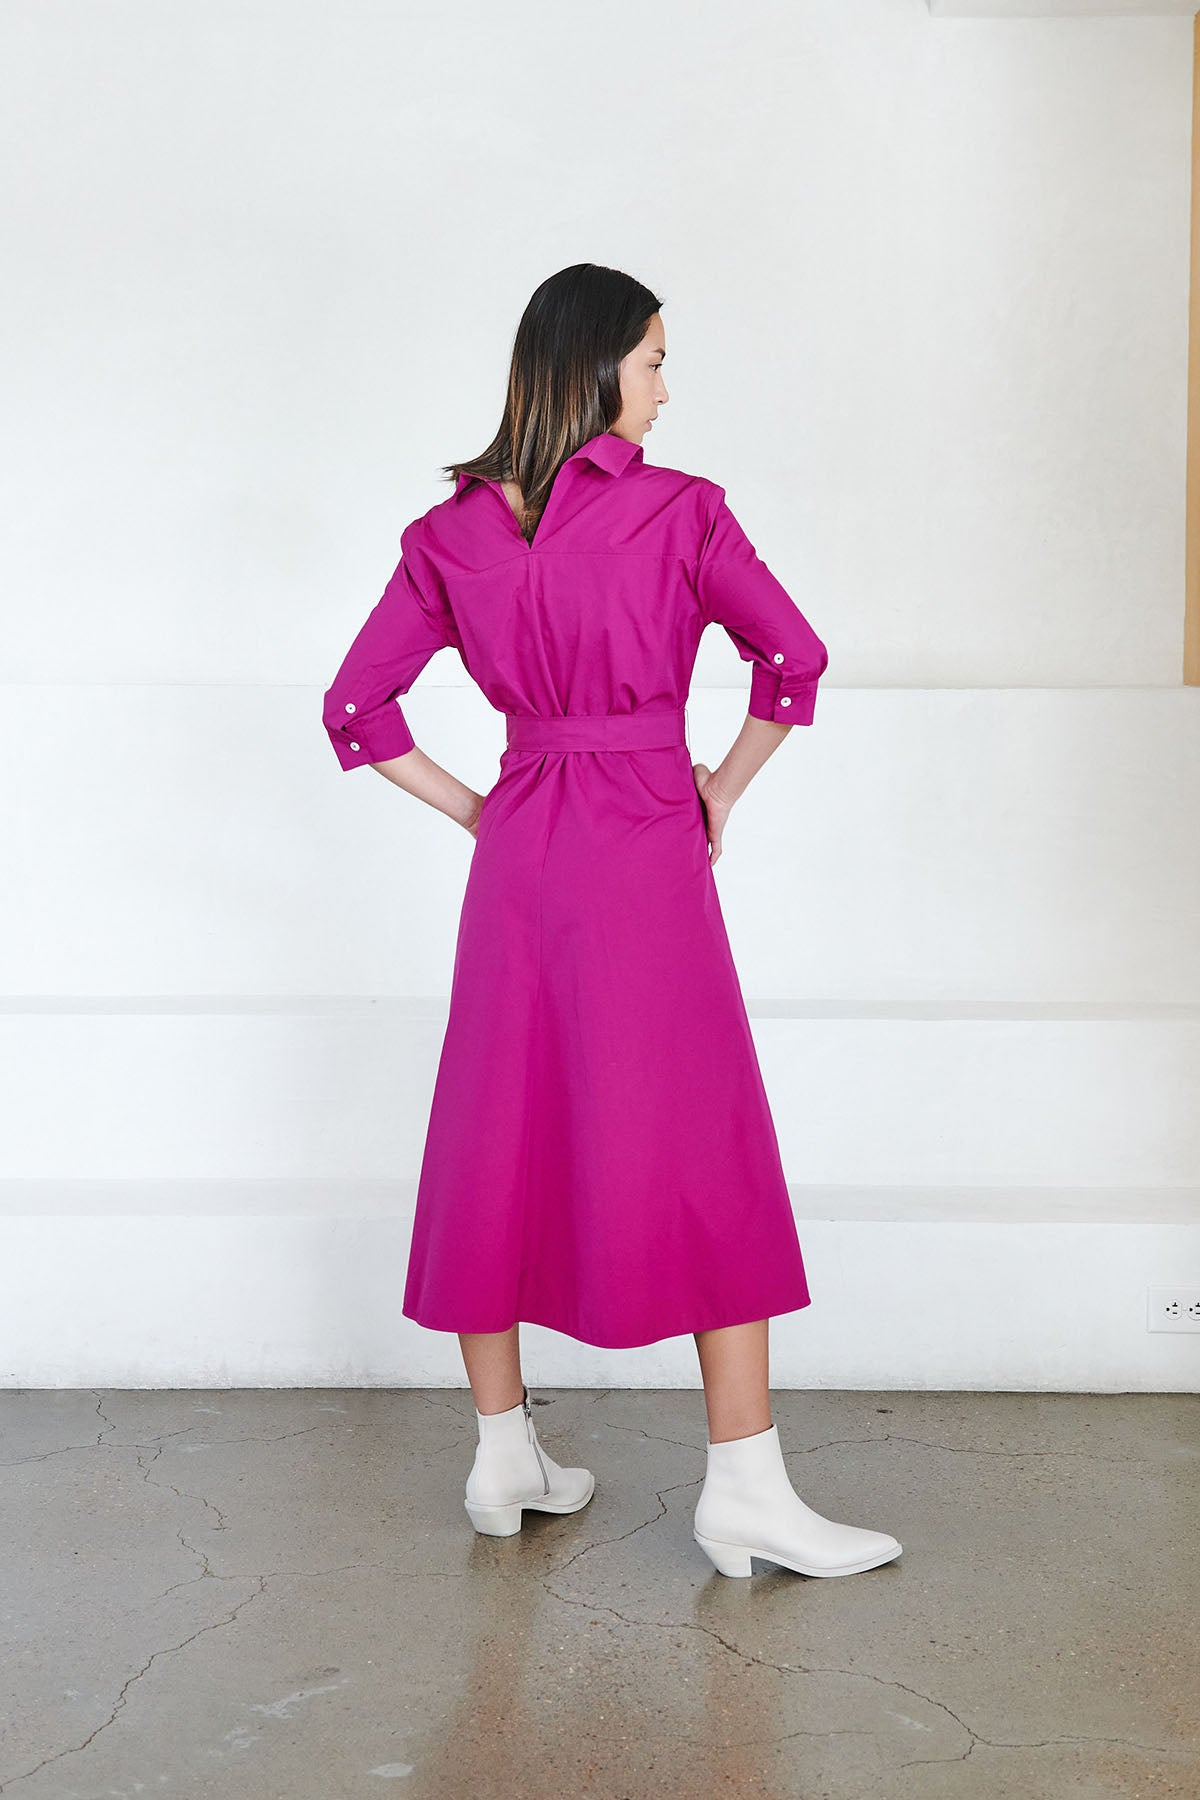 MARNI - belted dress, lavender